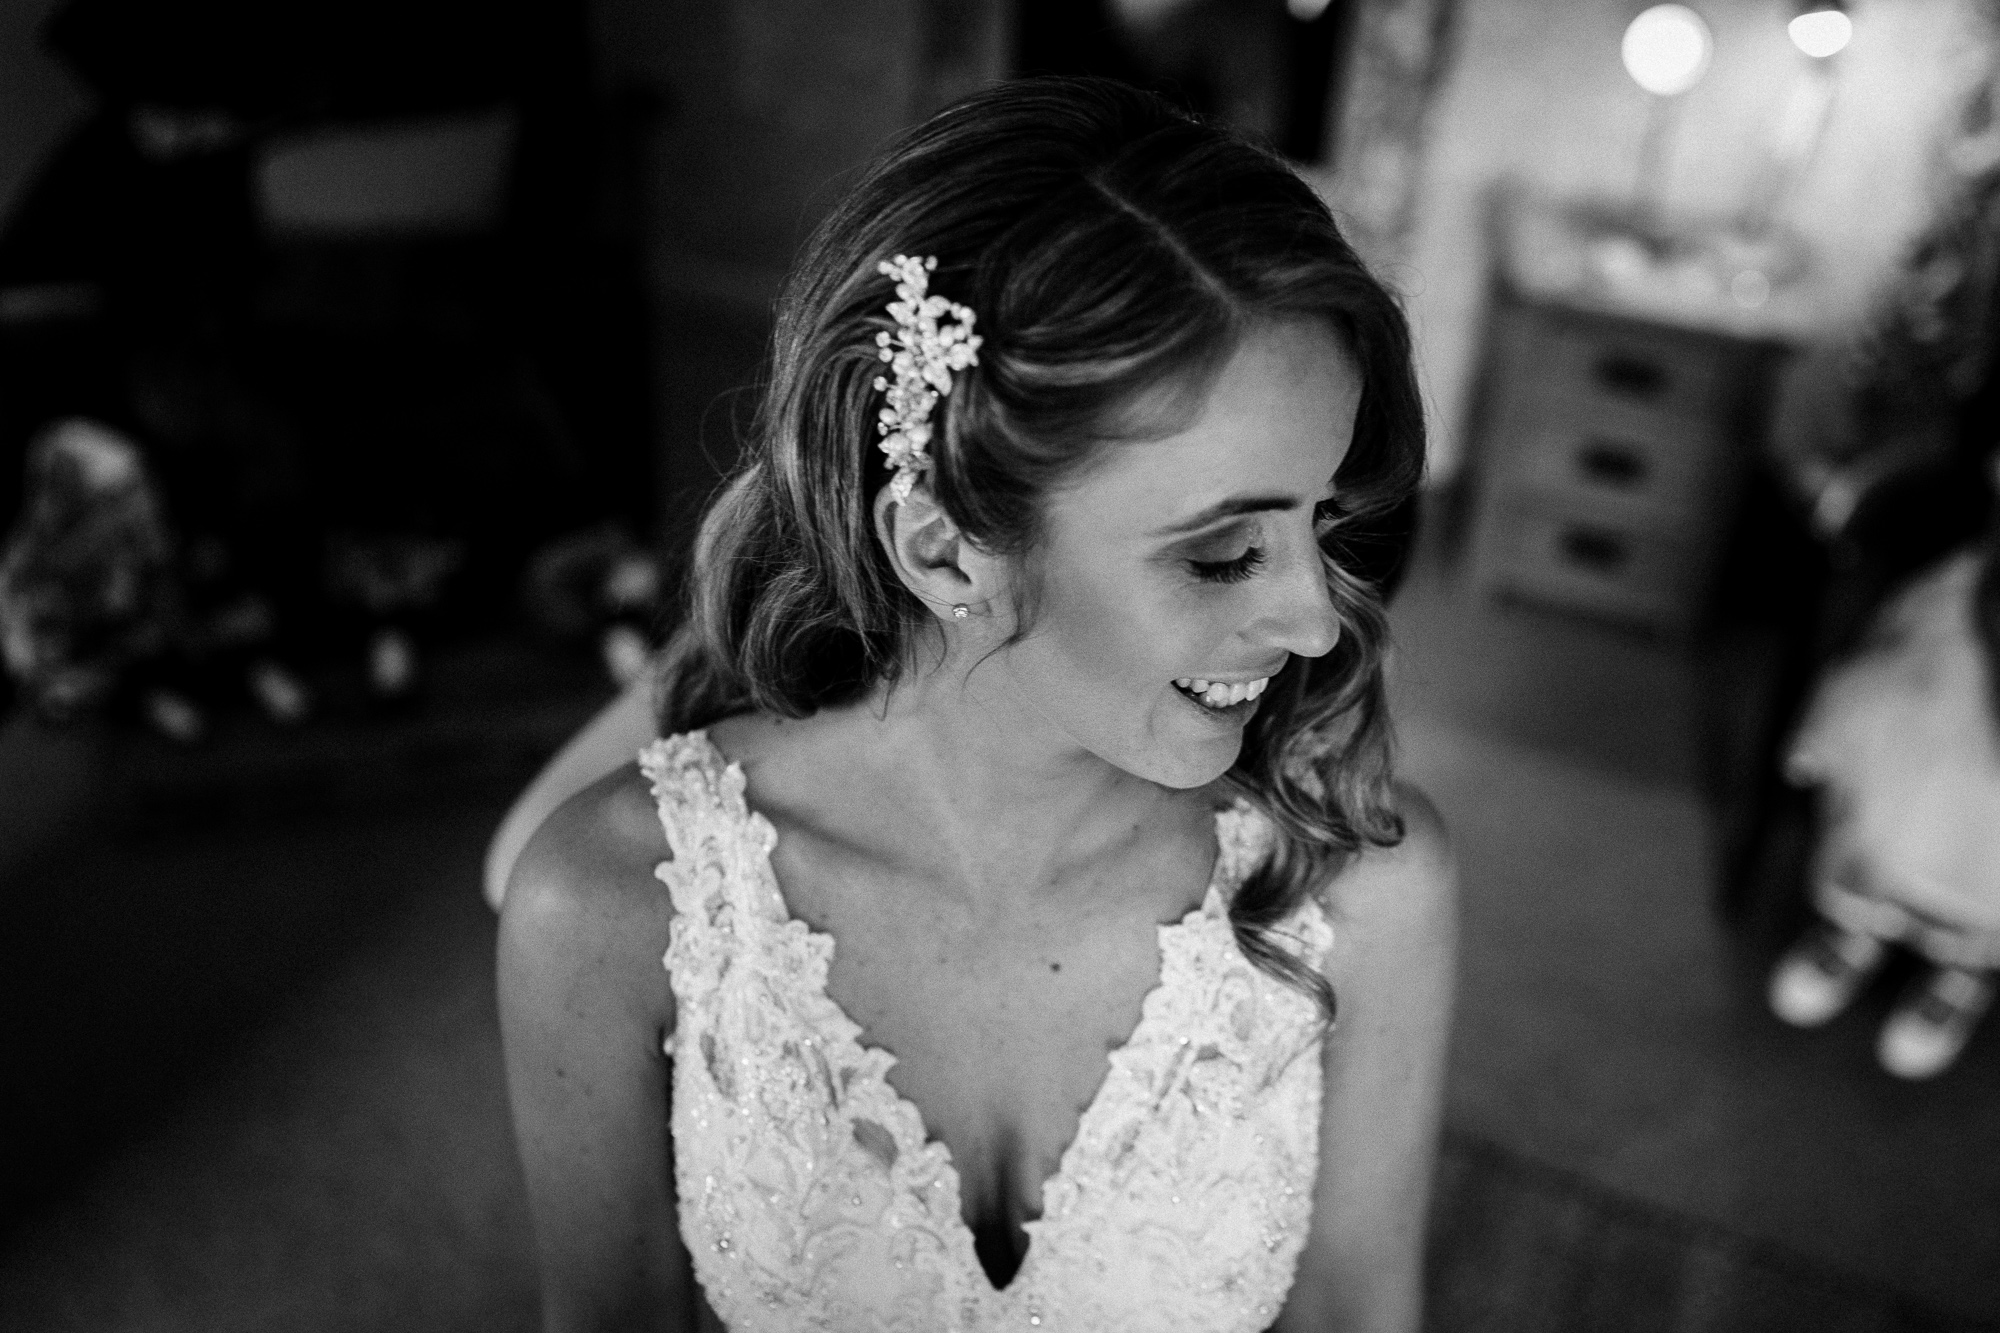 Tower Hill BArn Wedding Photographer based in north west england (14 of 35).jpg